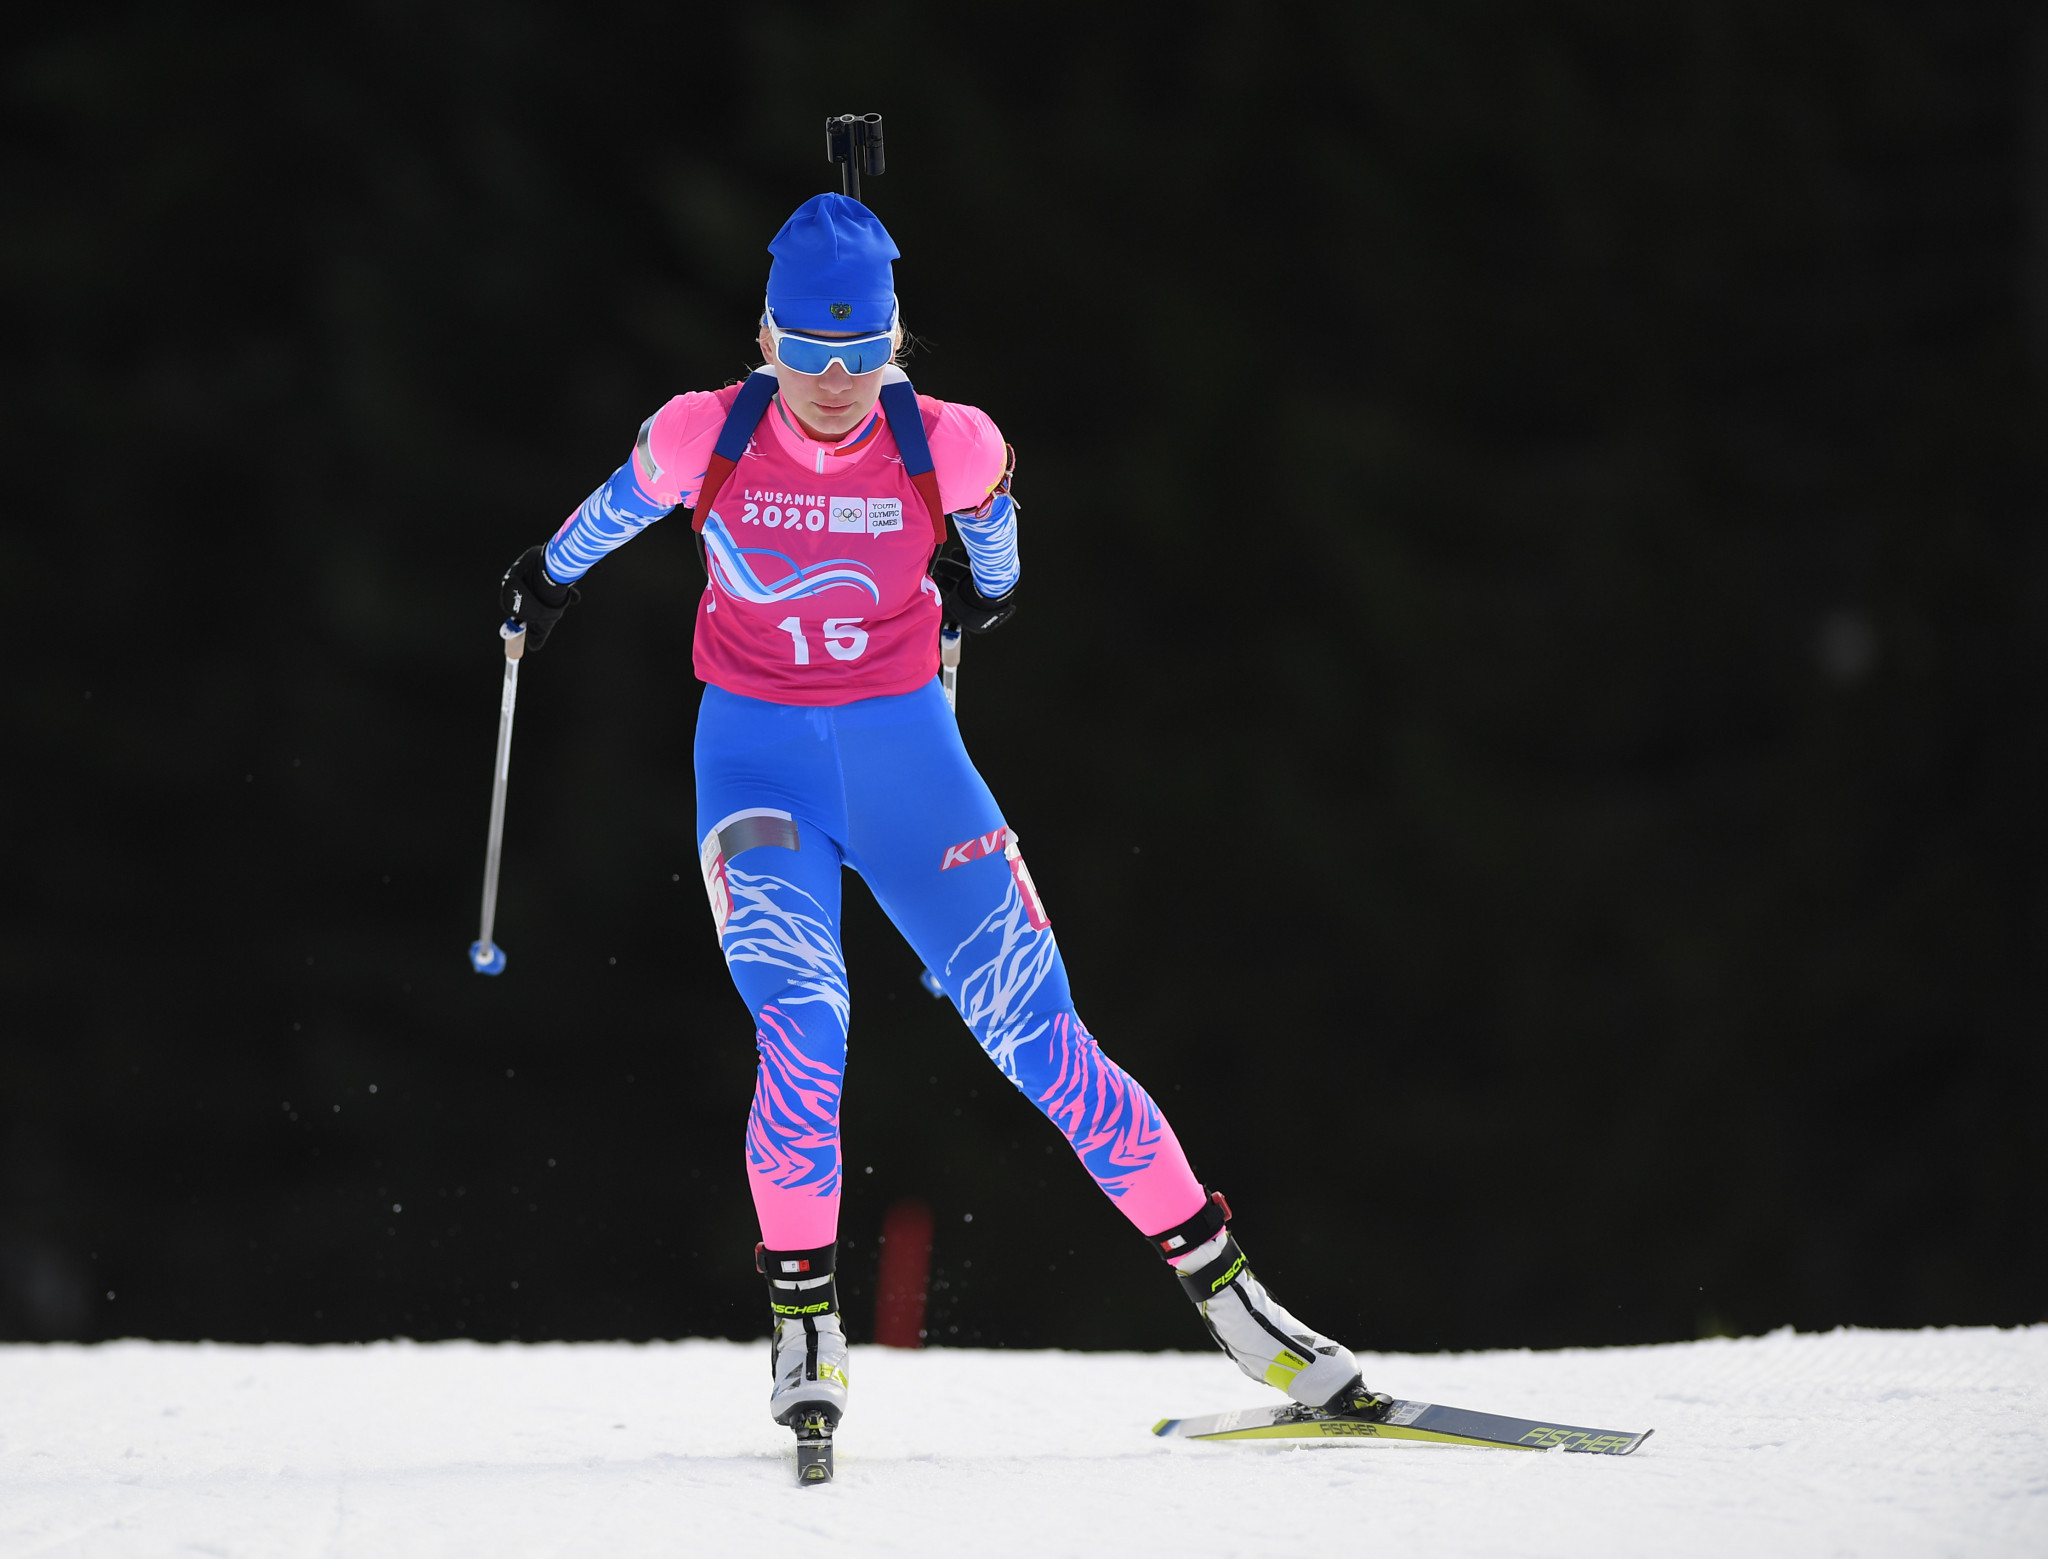 Mokhova clinches second biathlon gold with sprint triumph at Lausanne 2020